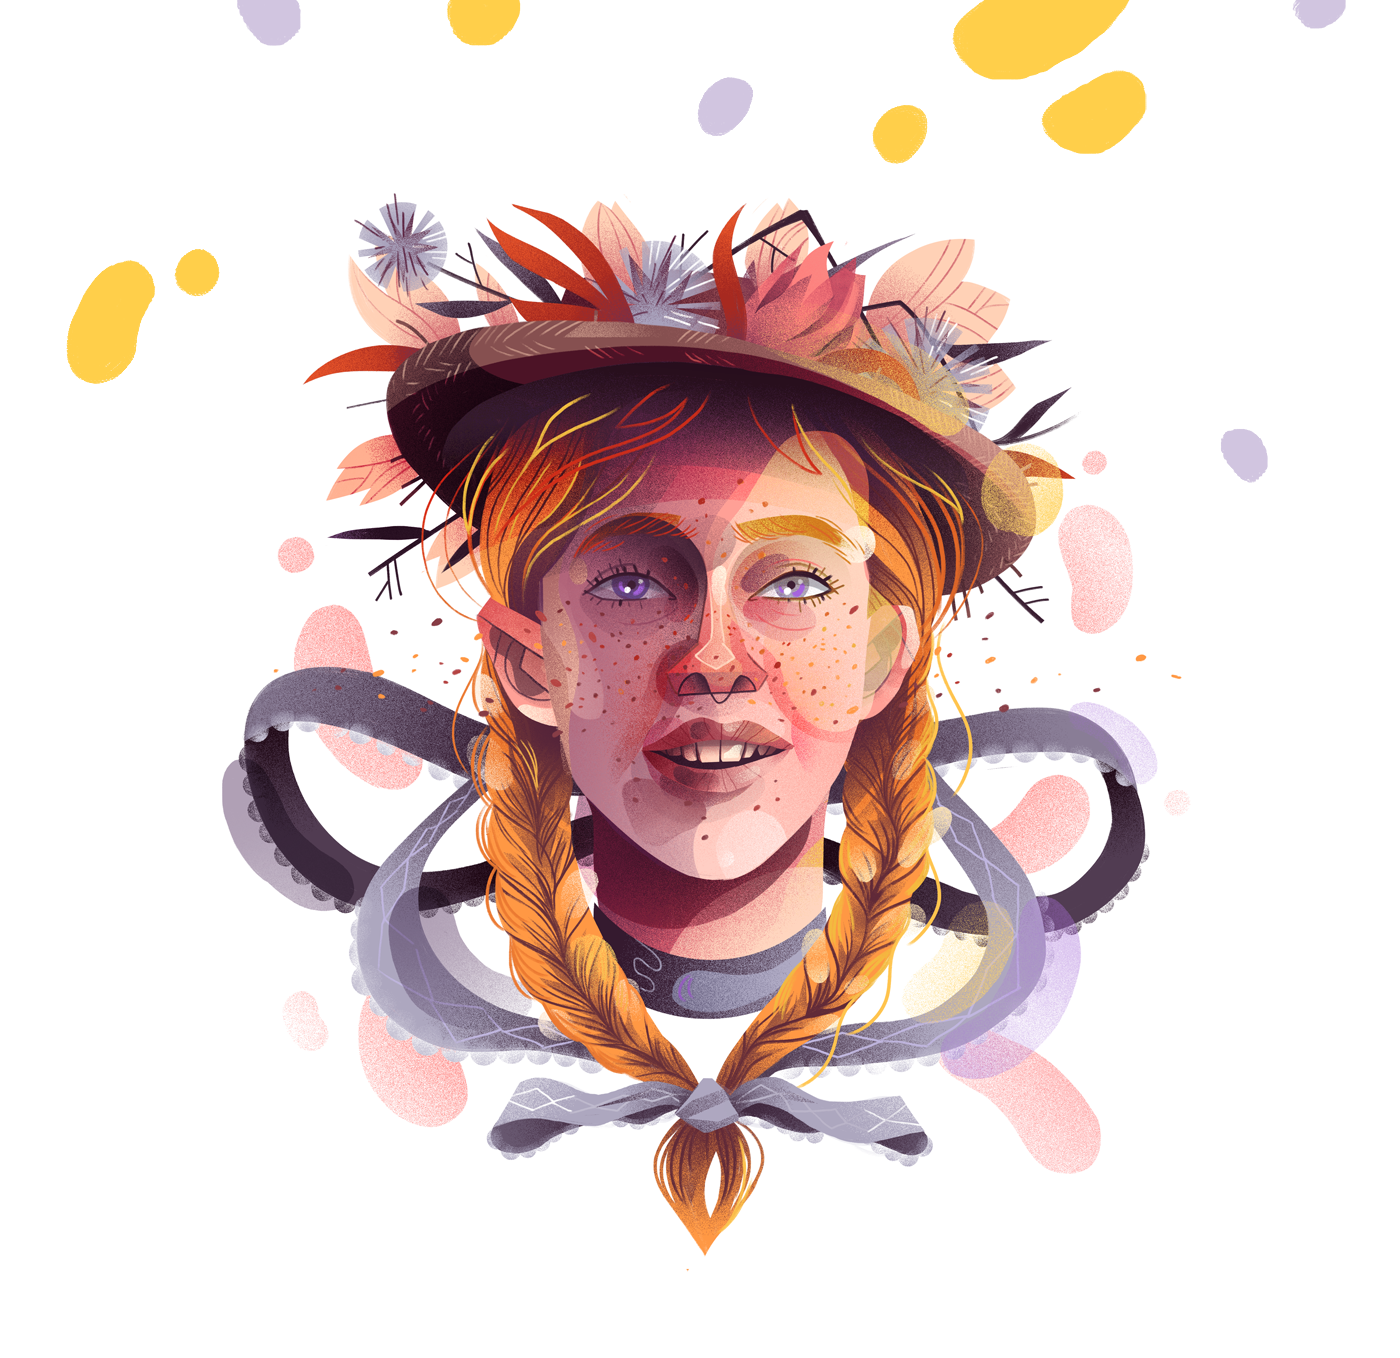 Orange Hair, Don't Care: Anne portrays as the unpopular kid who learns how to fit in. In season 3, she showed tremendous growth and found out herself in a much deeper way.